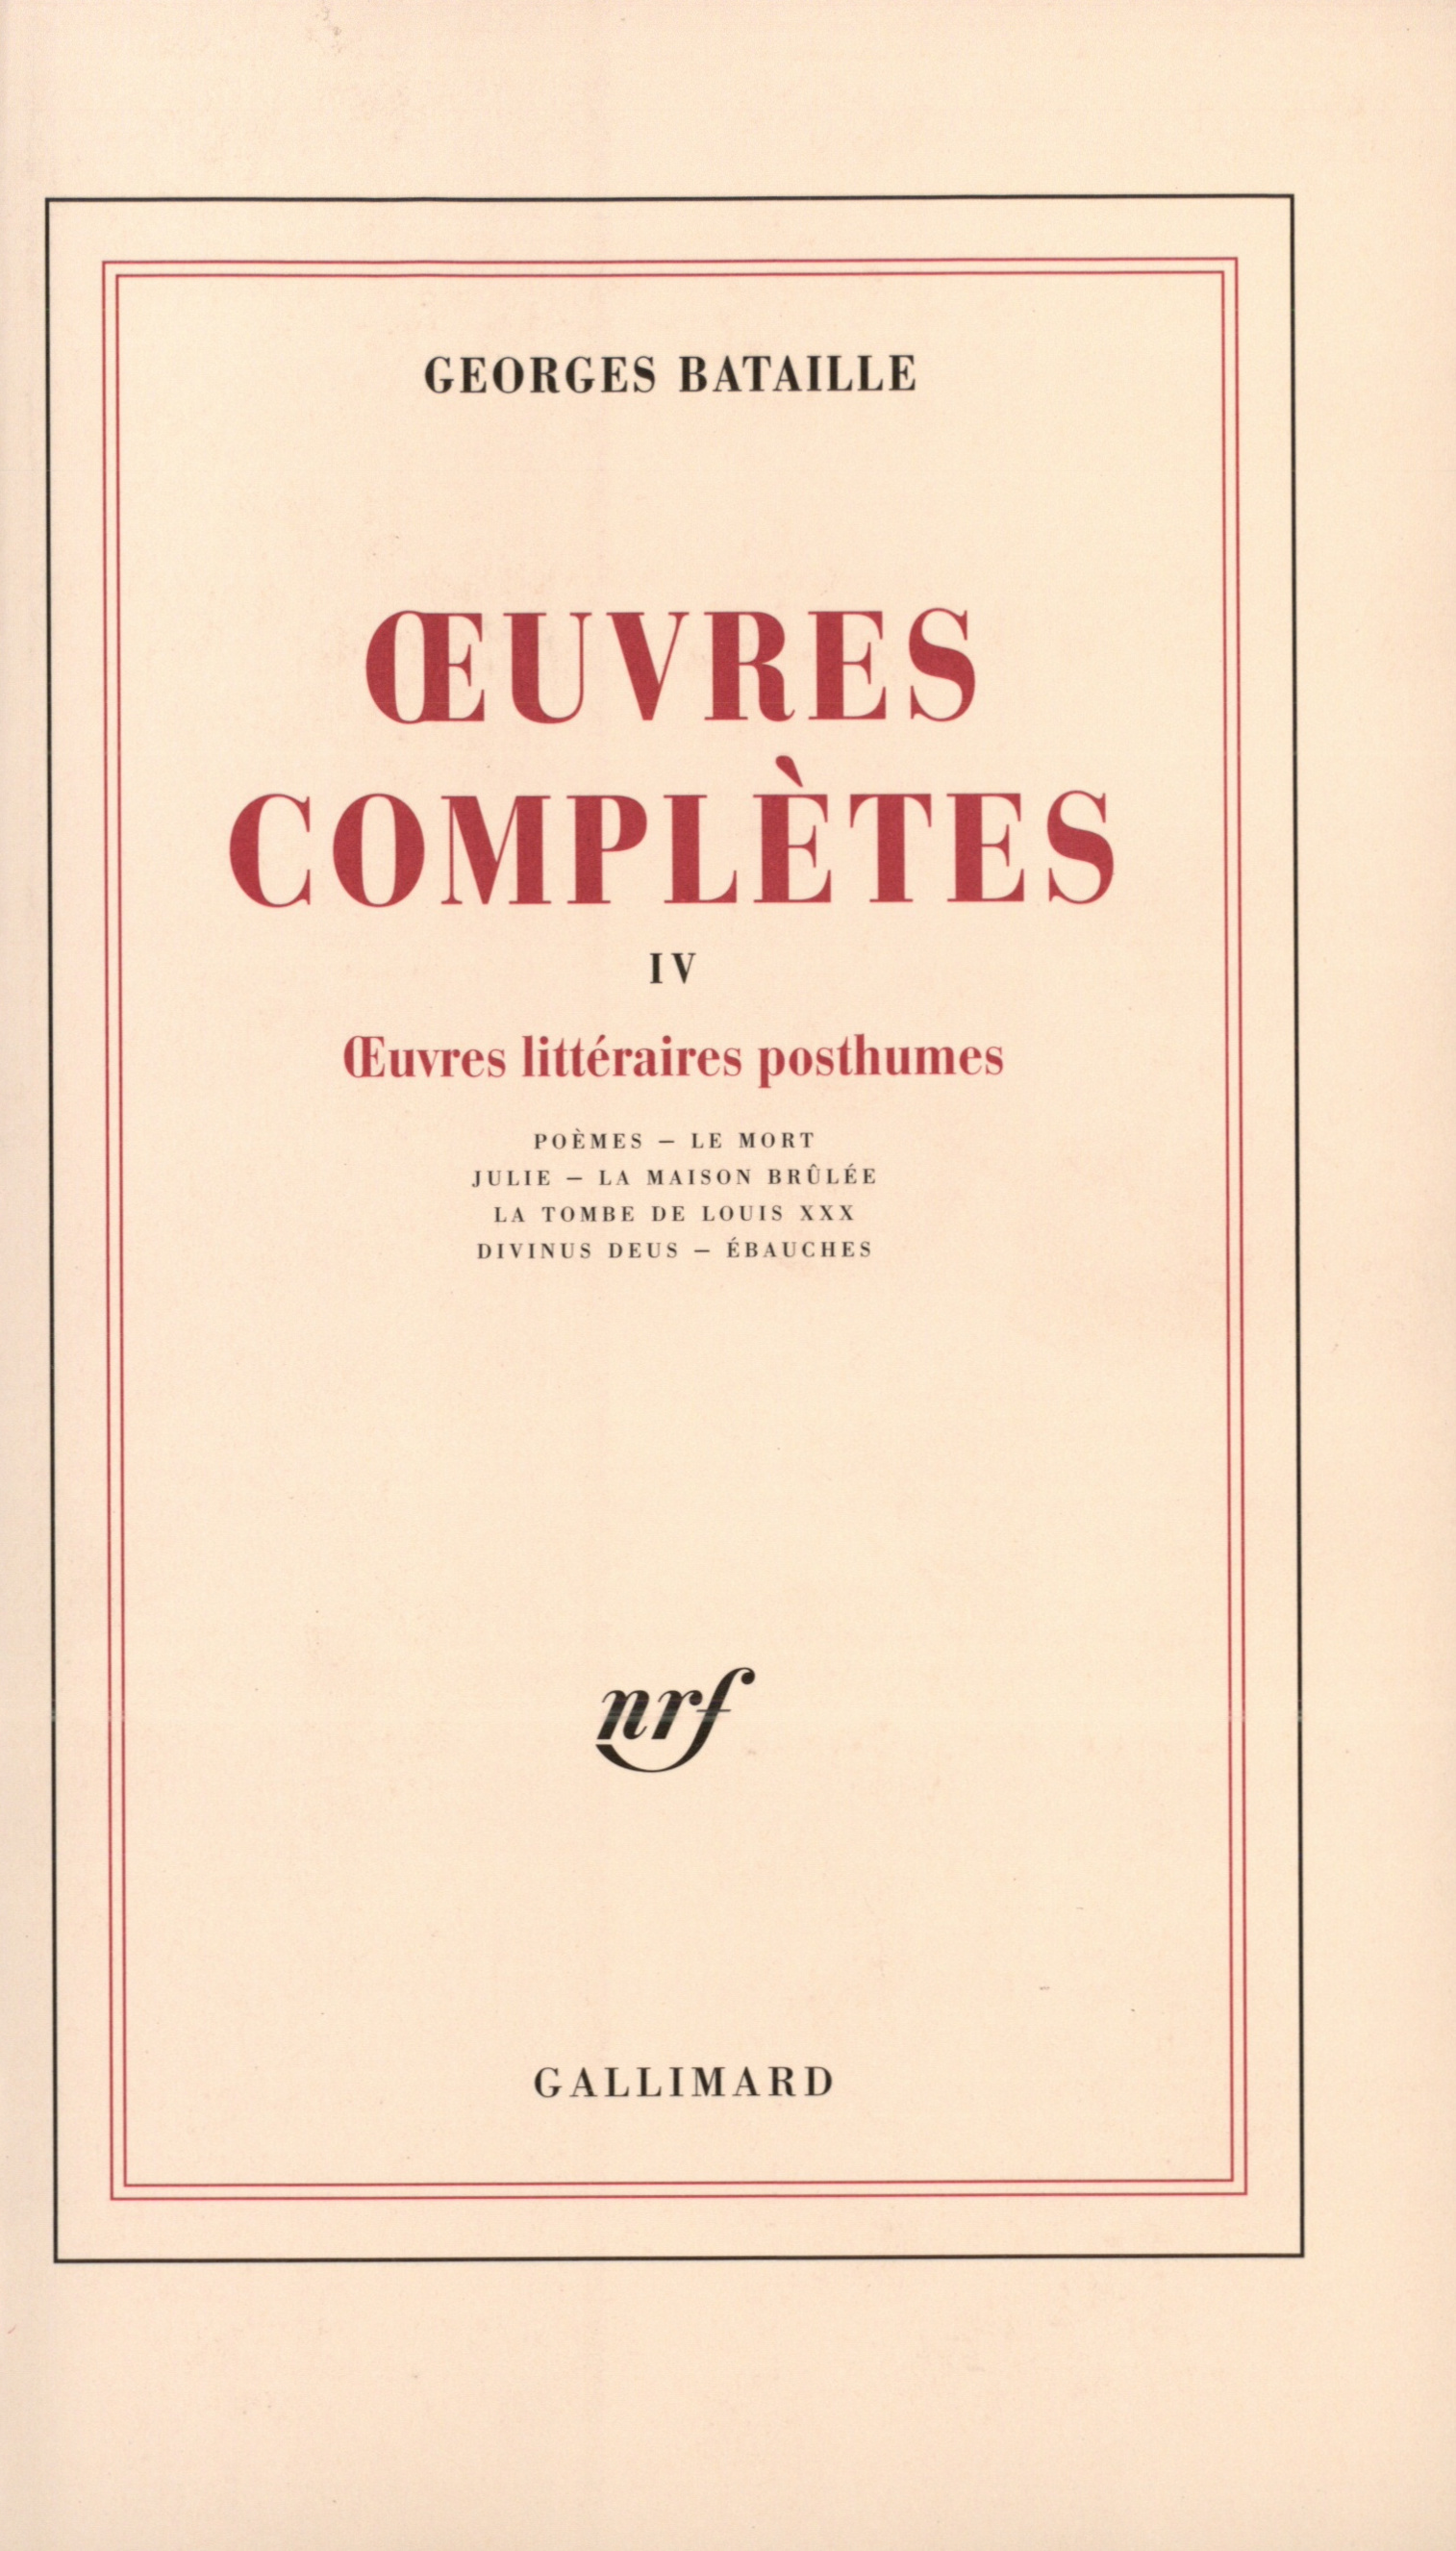 Œuvres complètes, tome 4 Cover art